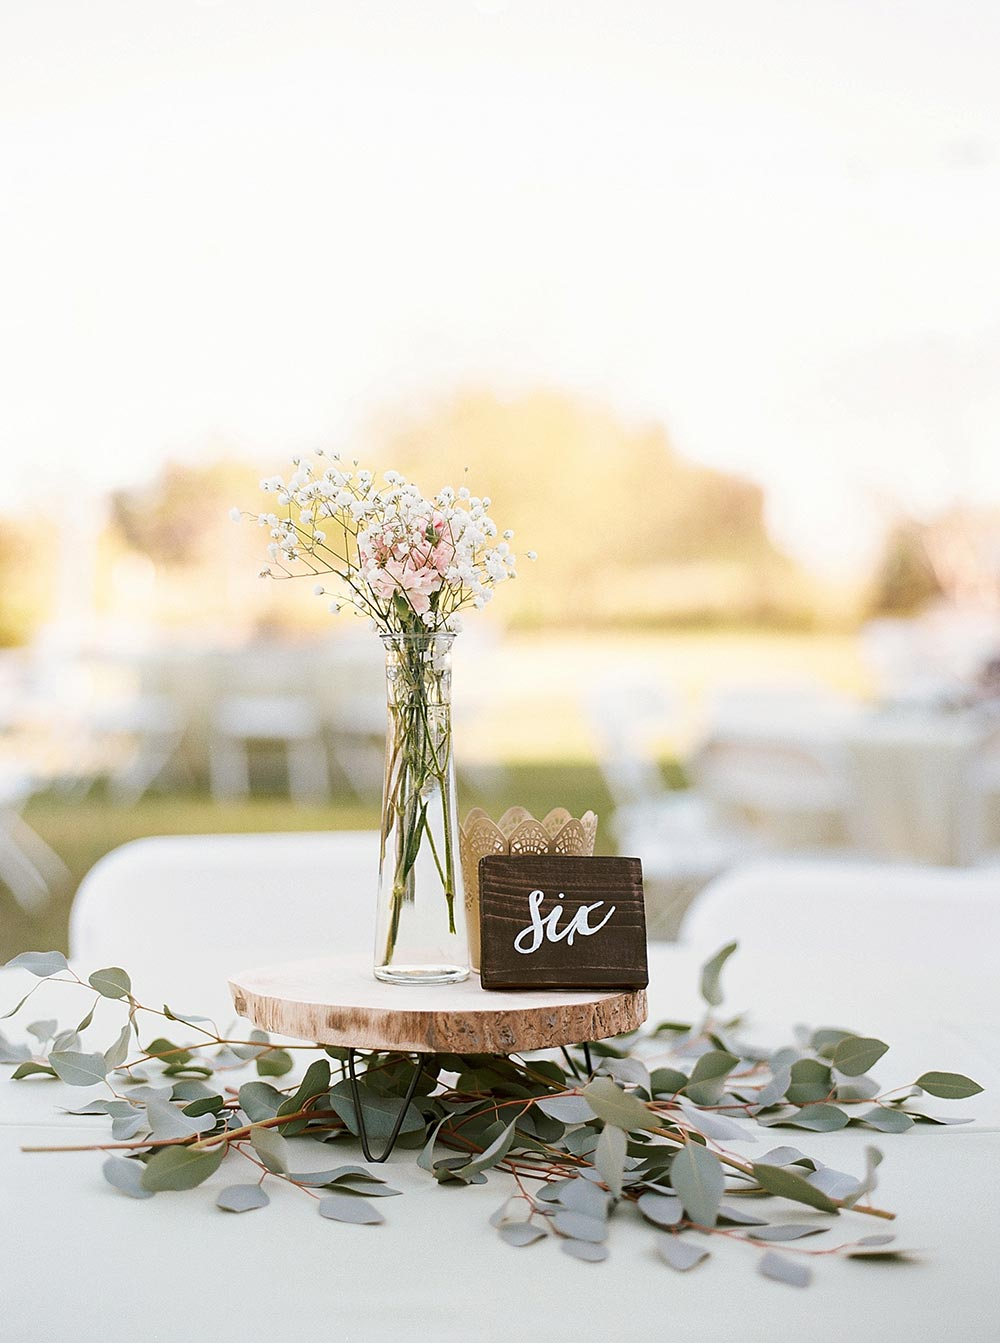 wedding wooden table numbers and bud vase centerpiece